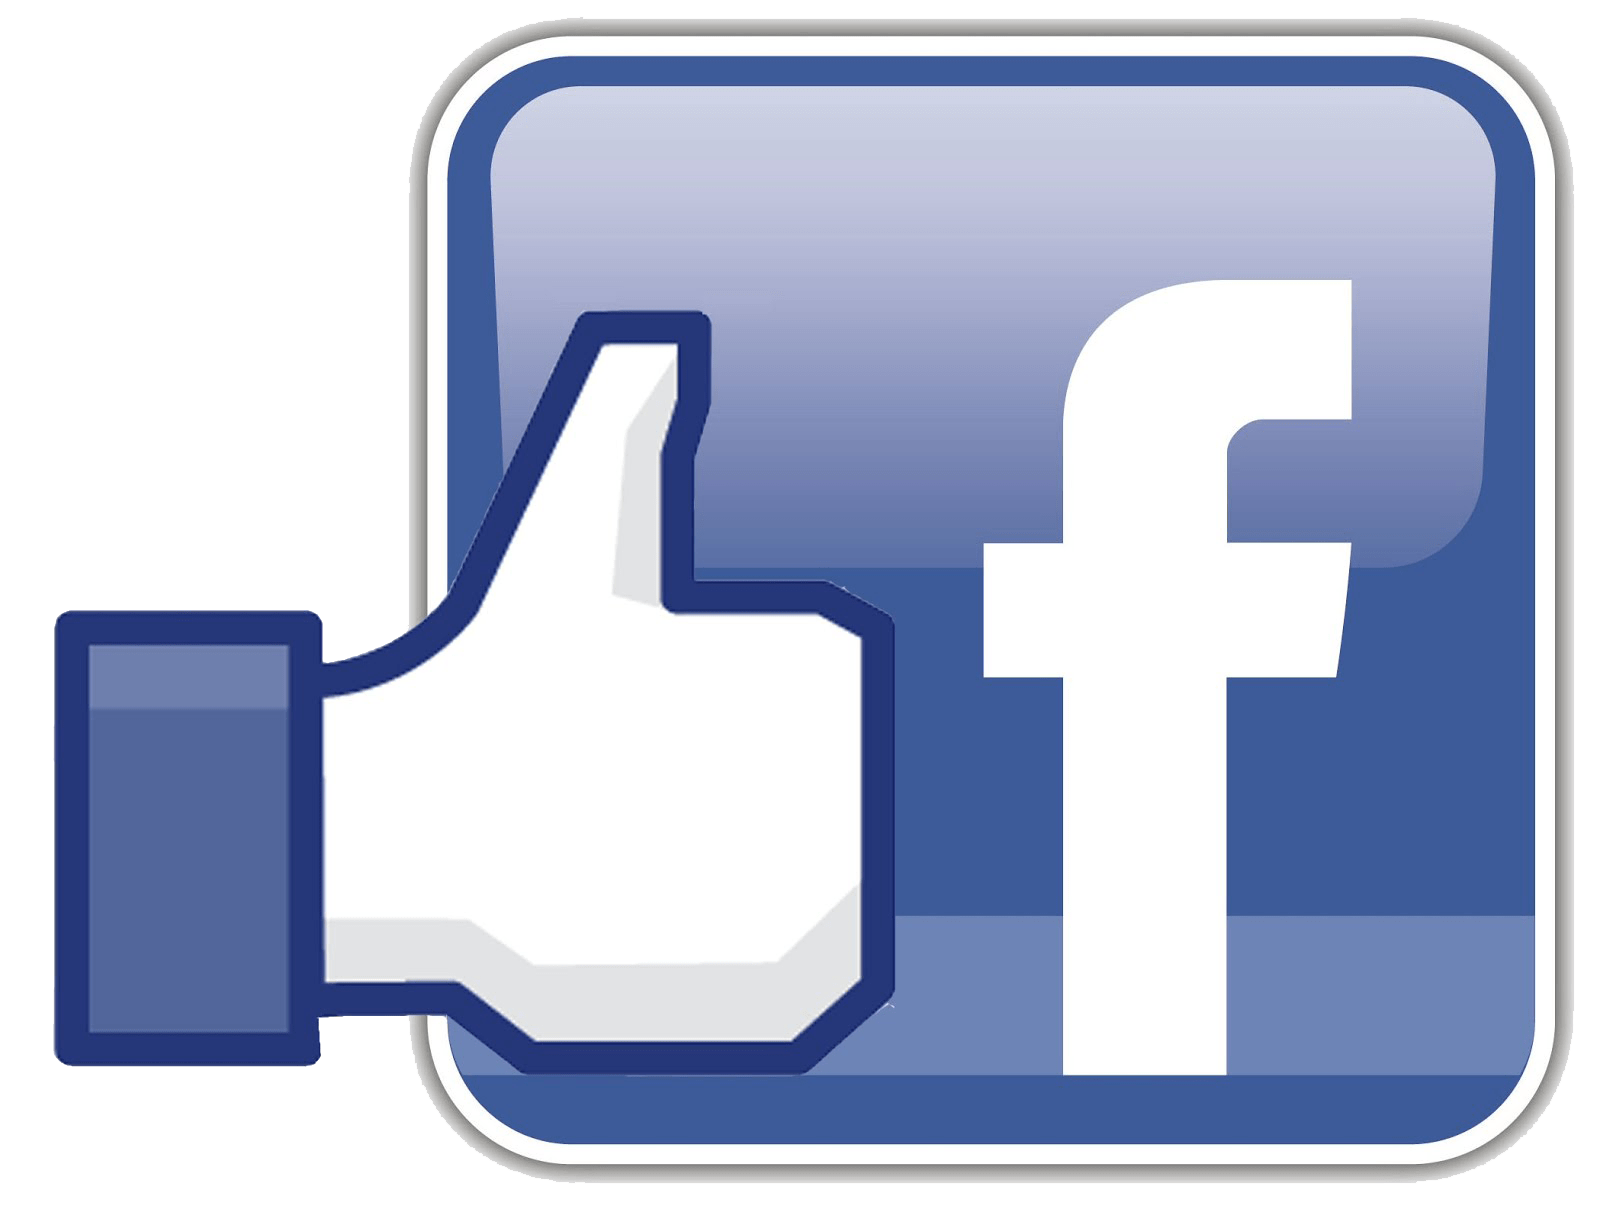 facebook like logo png